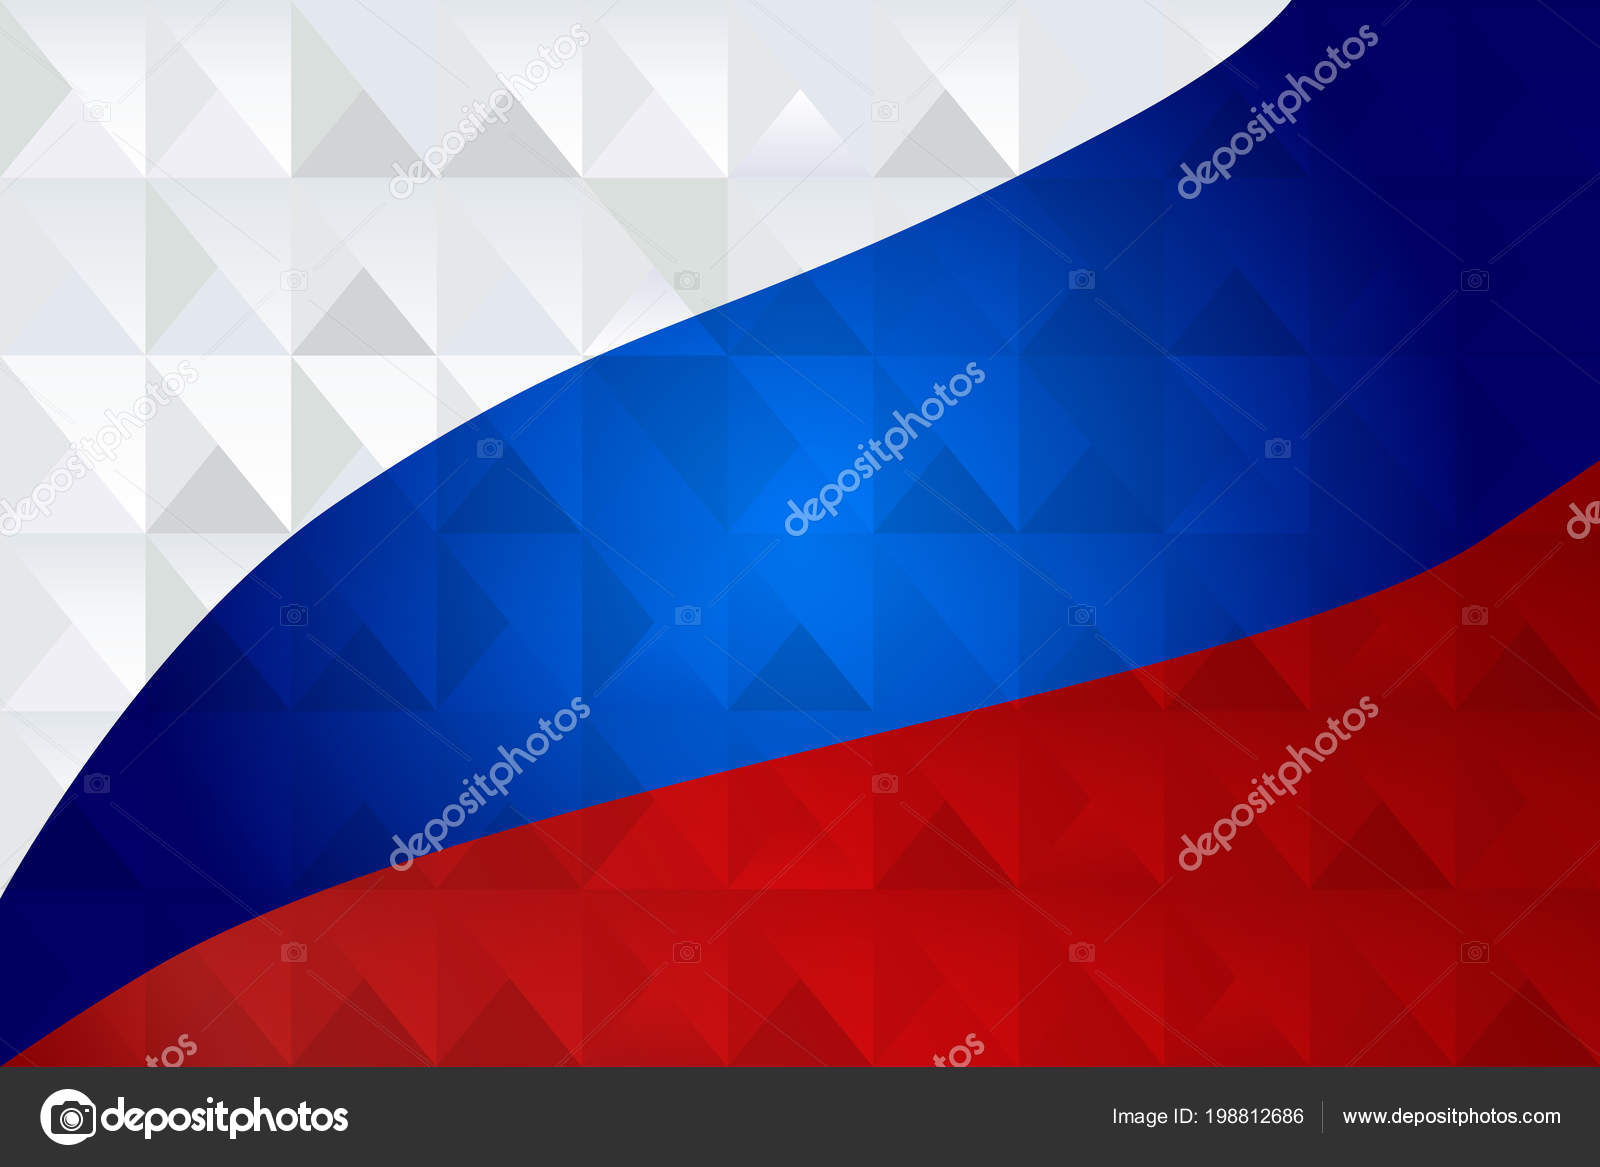 cad722c6920e61 2018 World Cup Soccer Competition Russian Flag Tricolor White Blue ...